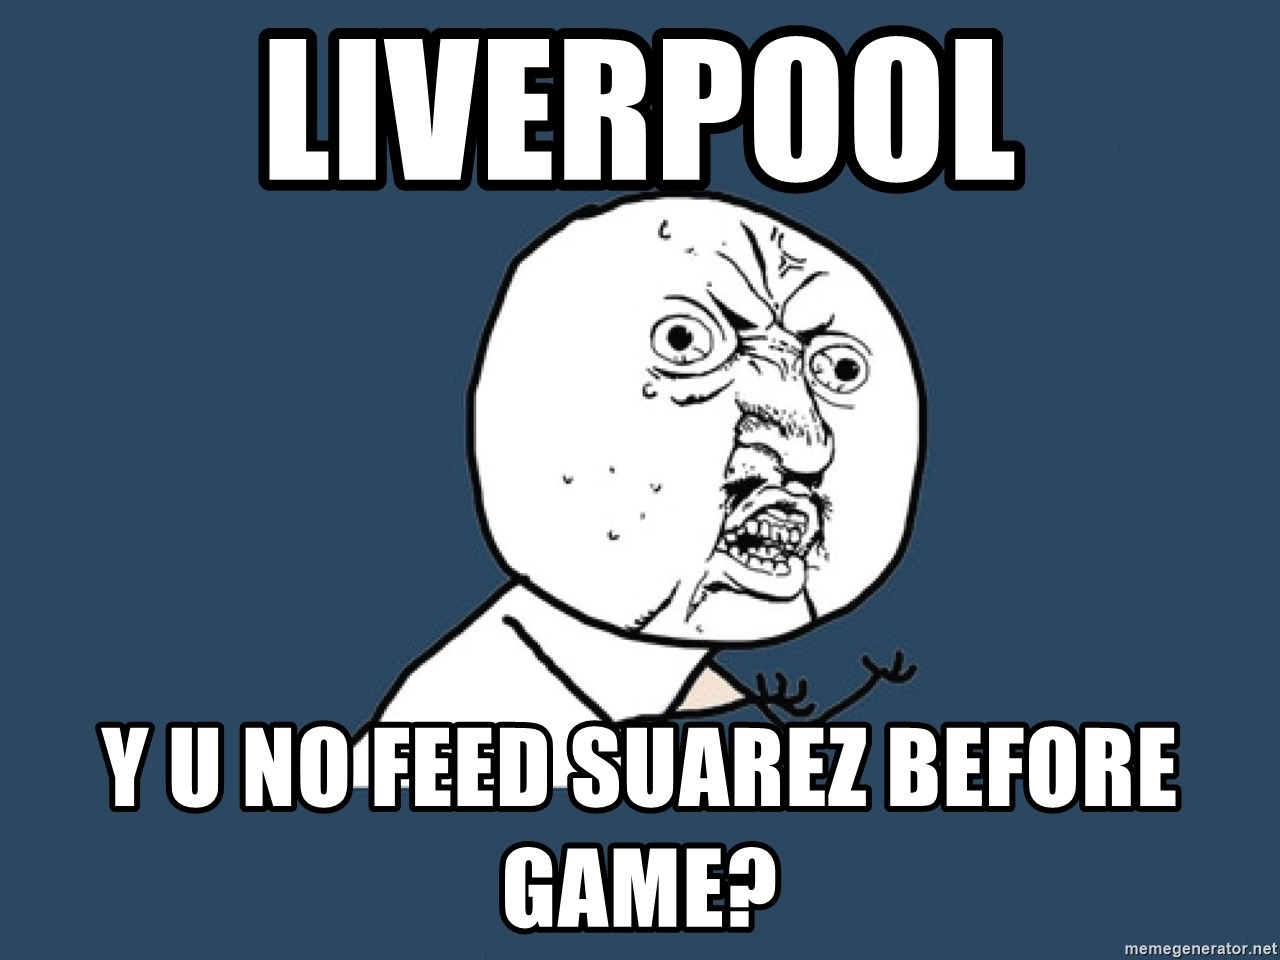 Y U No - LIVERPOOL Y U NO FEED SUAREZ BEFORE GAME?